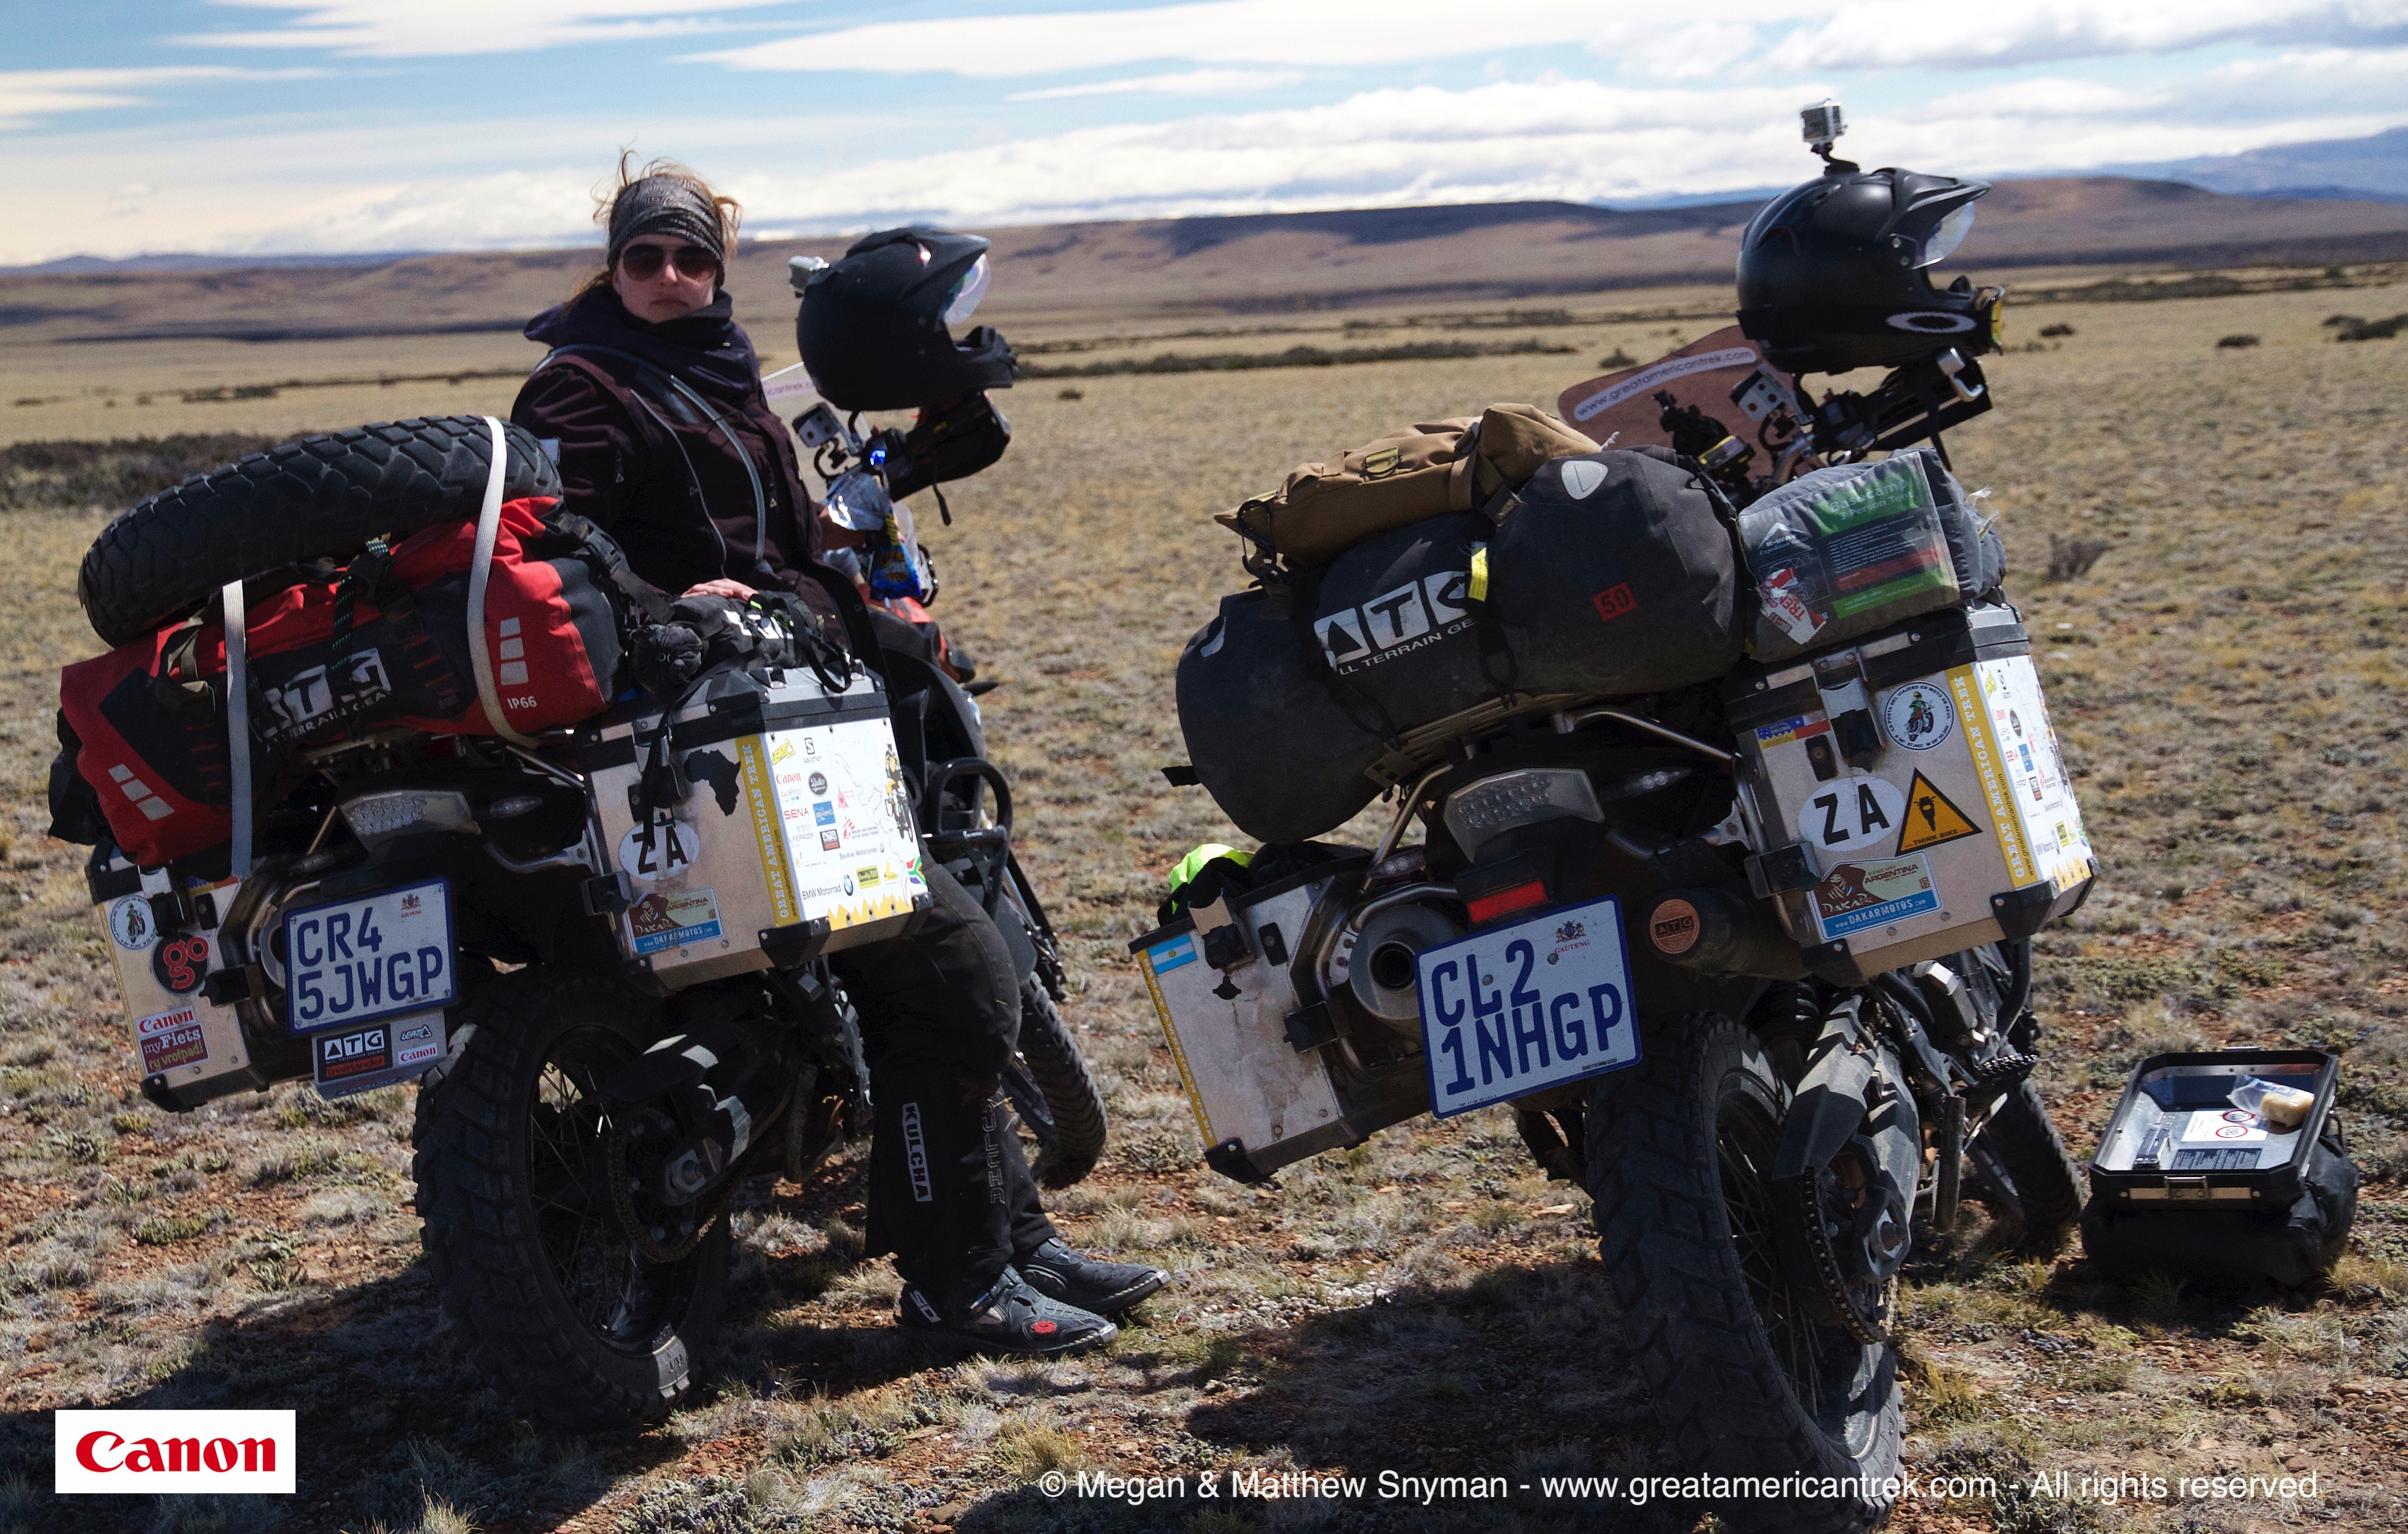 How Do Girls Pack For Adventure Motorcycle Travel Great